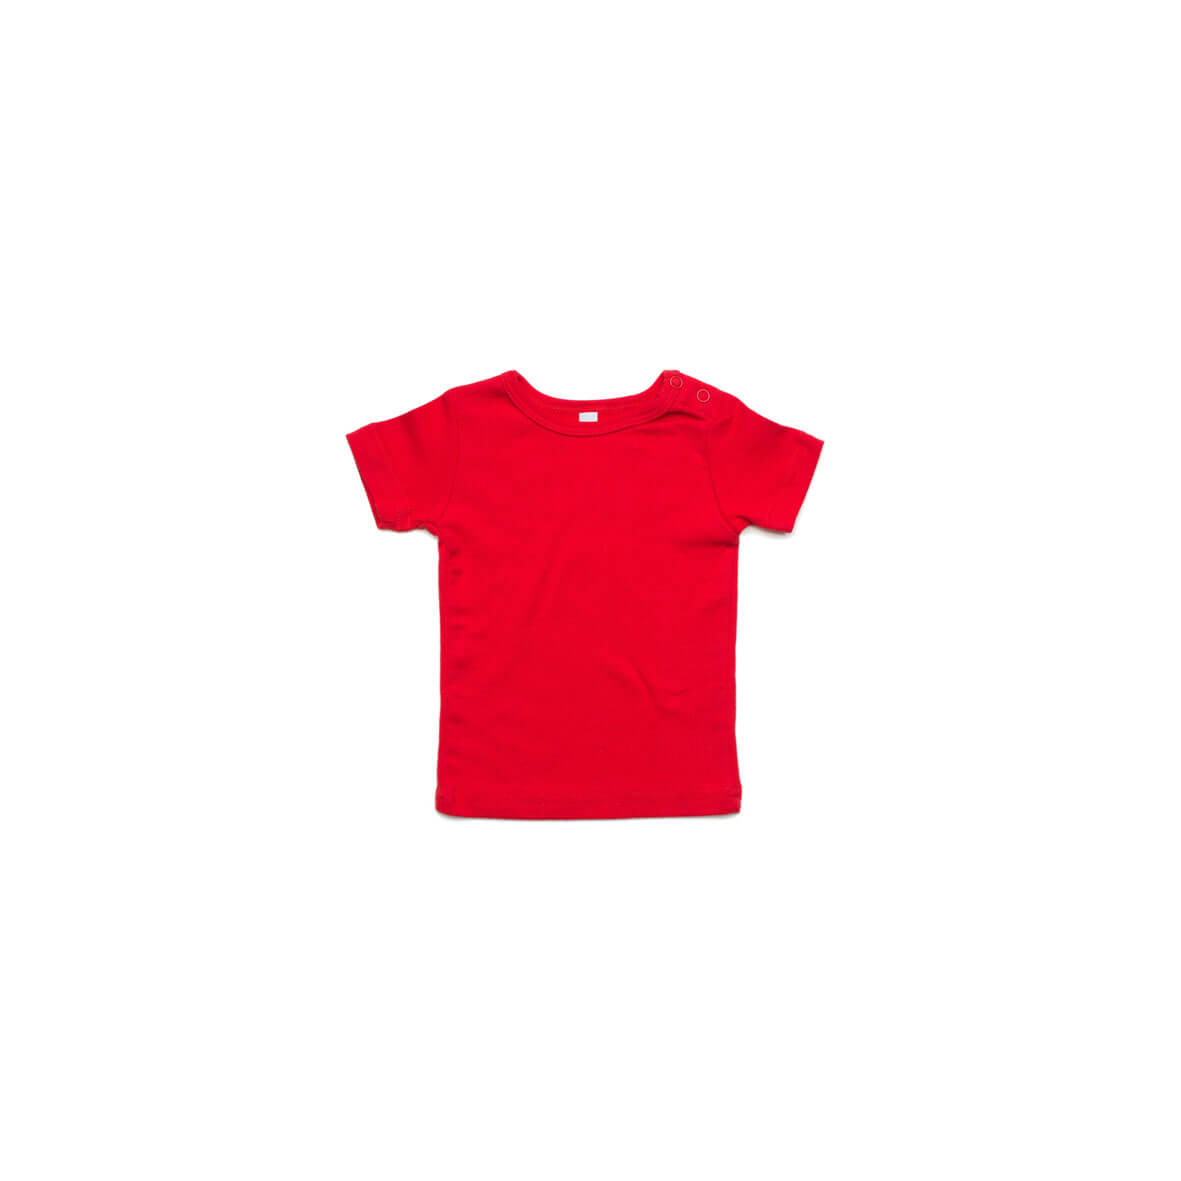 Kids clothing online nz